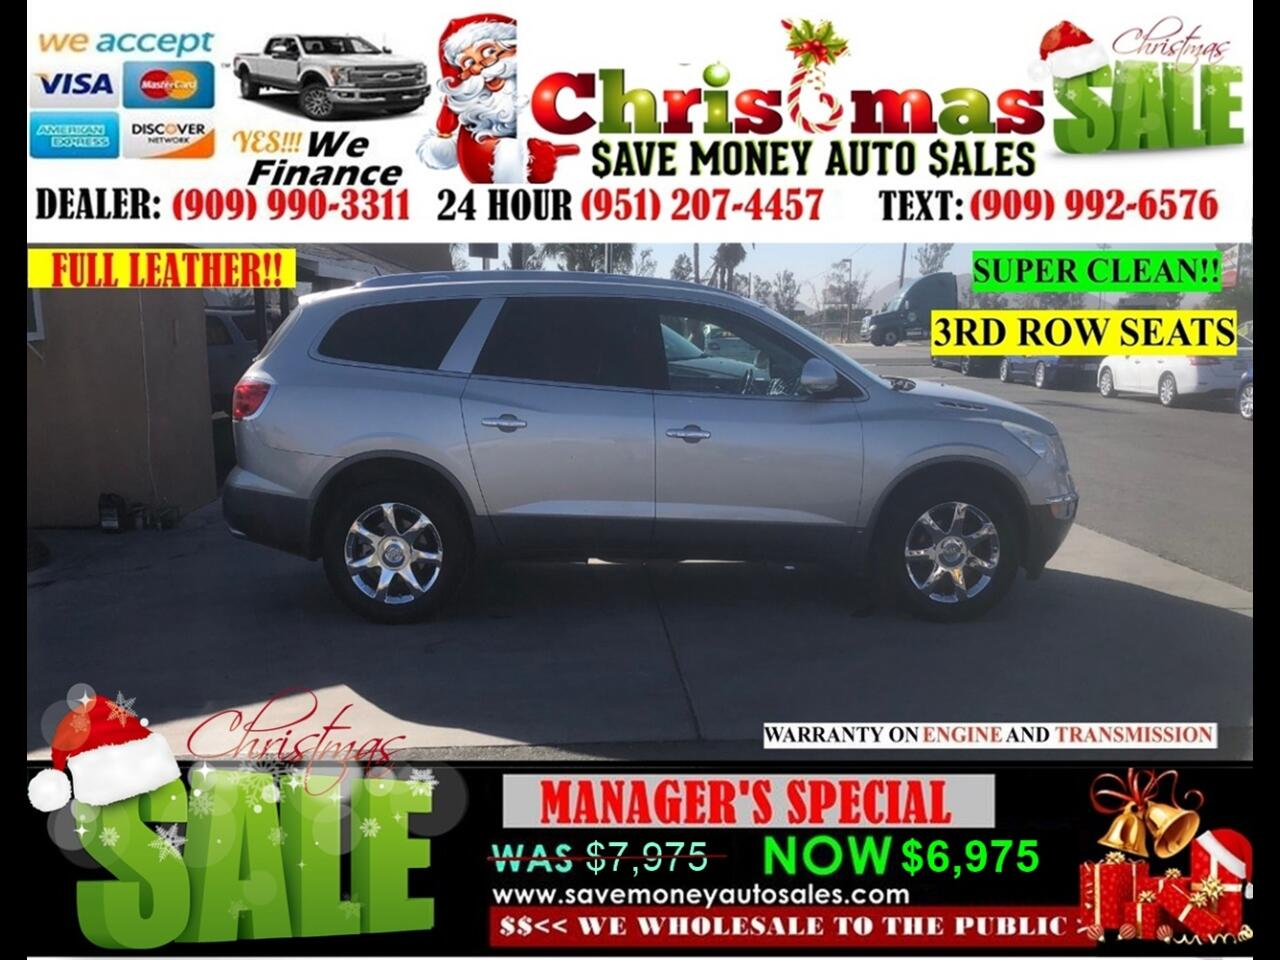 2008 Buick Enclave CXL>6 CYLDS, 3RD ROW SEATS!